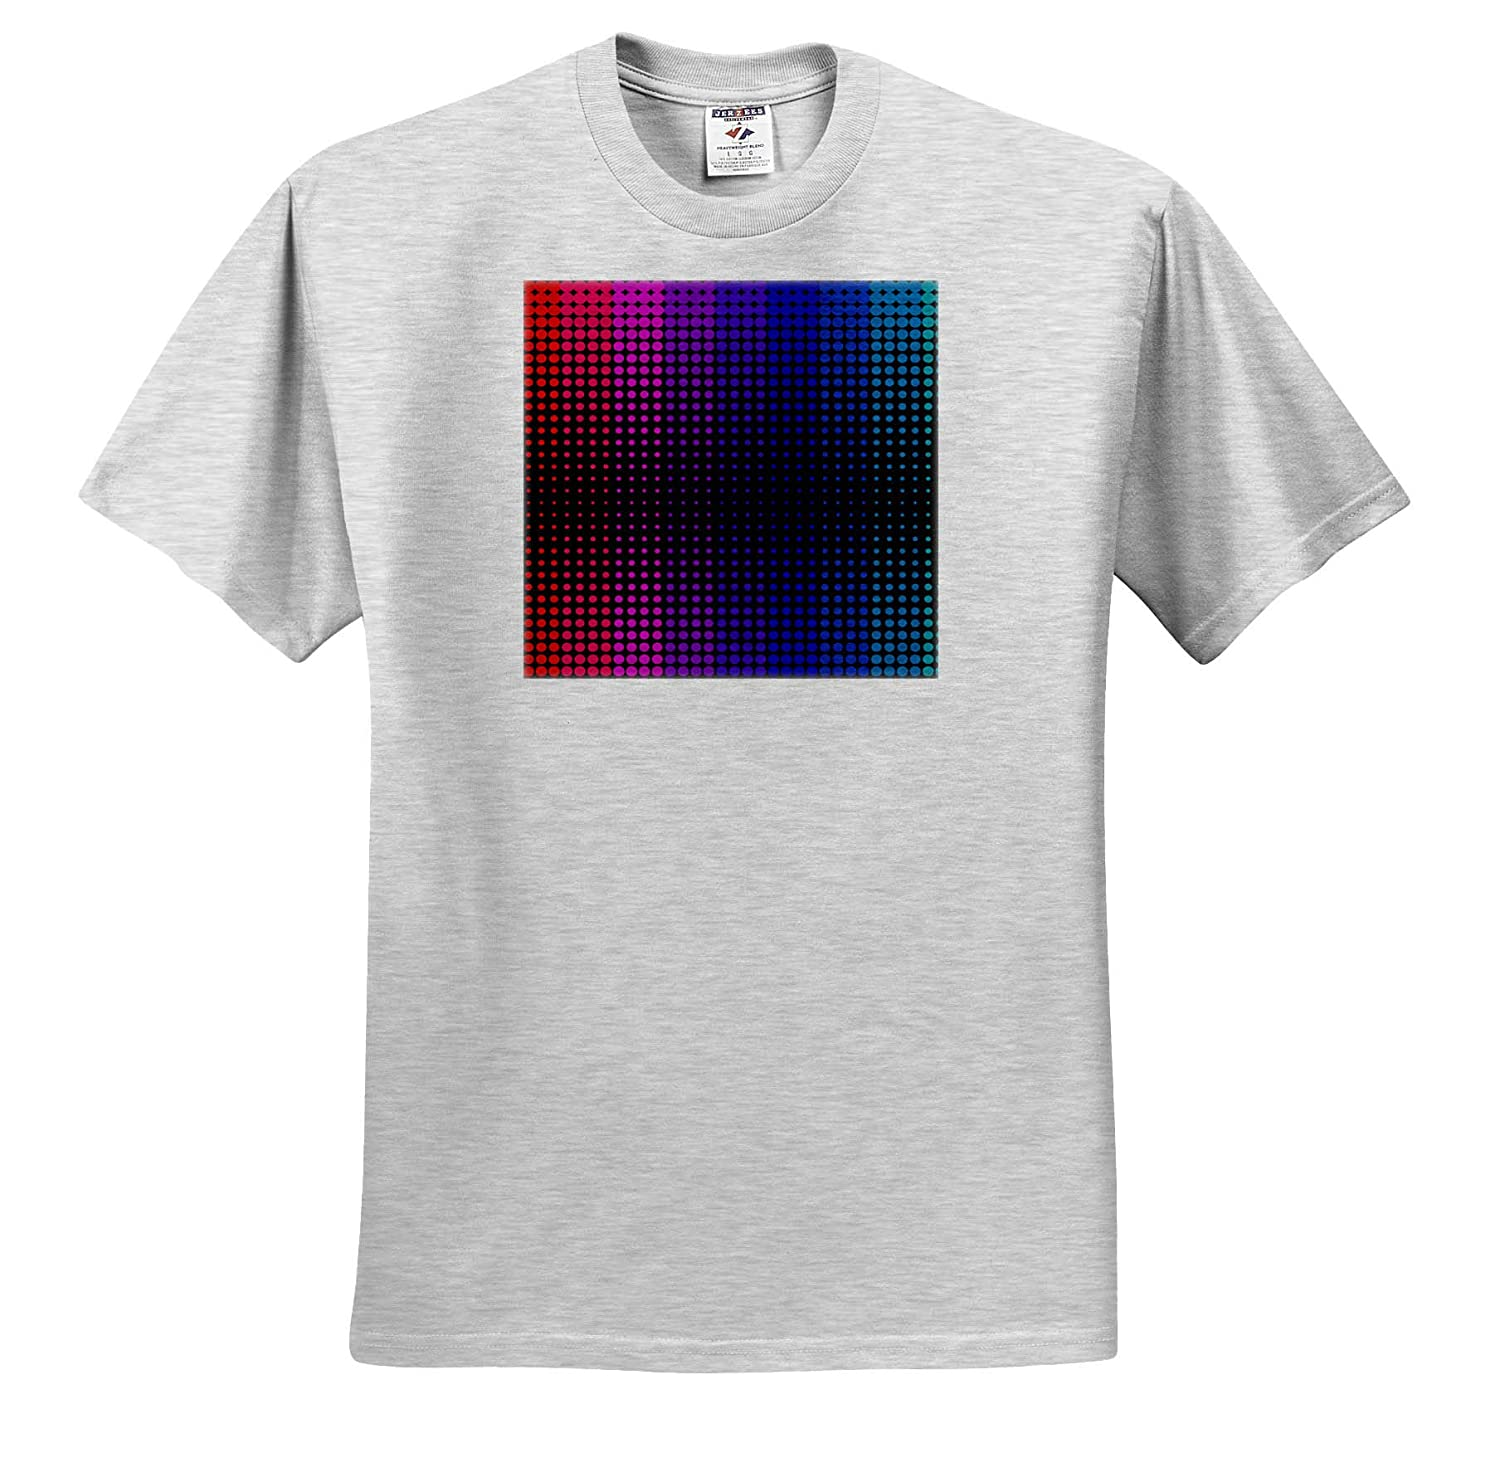 3dRose Sven Herkenrath Art Colorful Circles Abstract and Geometric Design Style T-Shirts